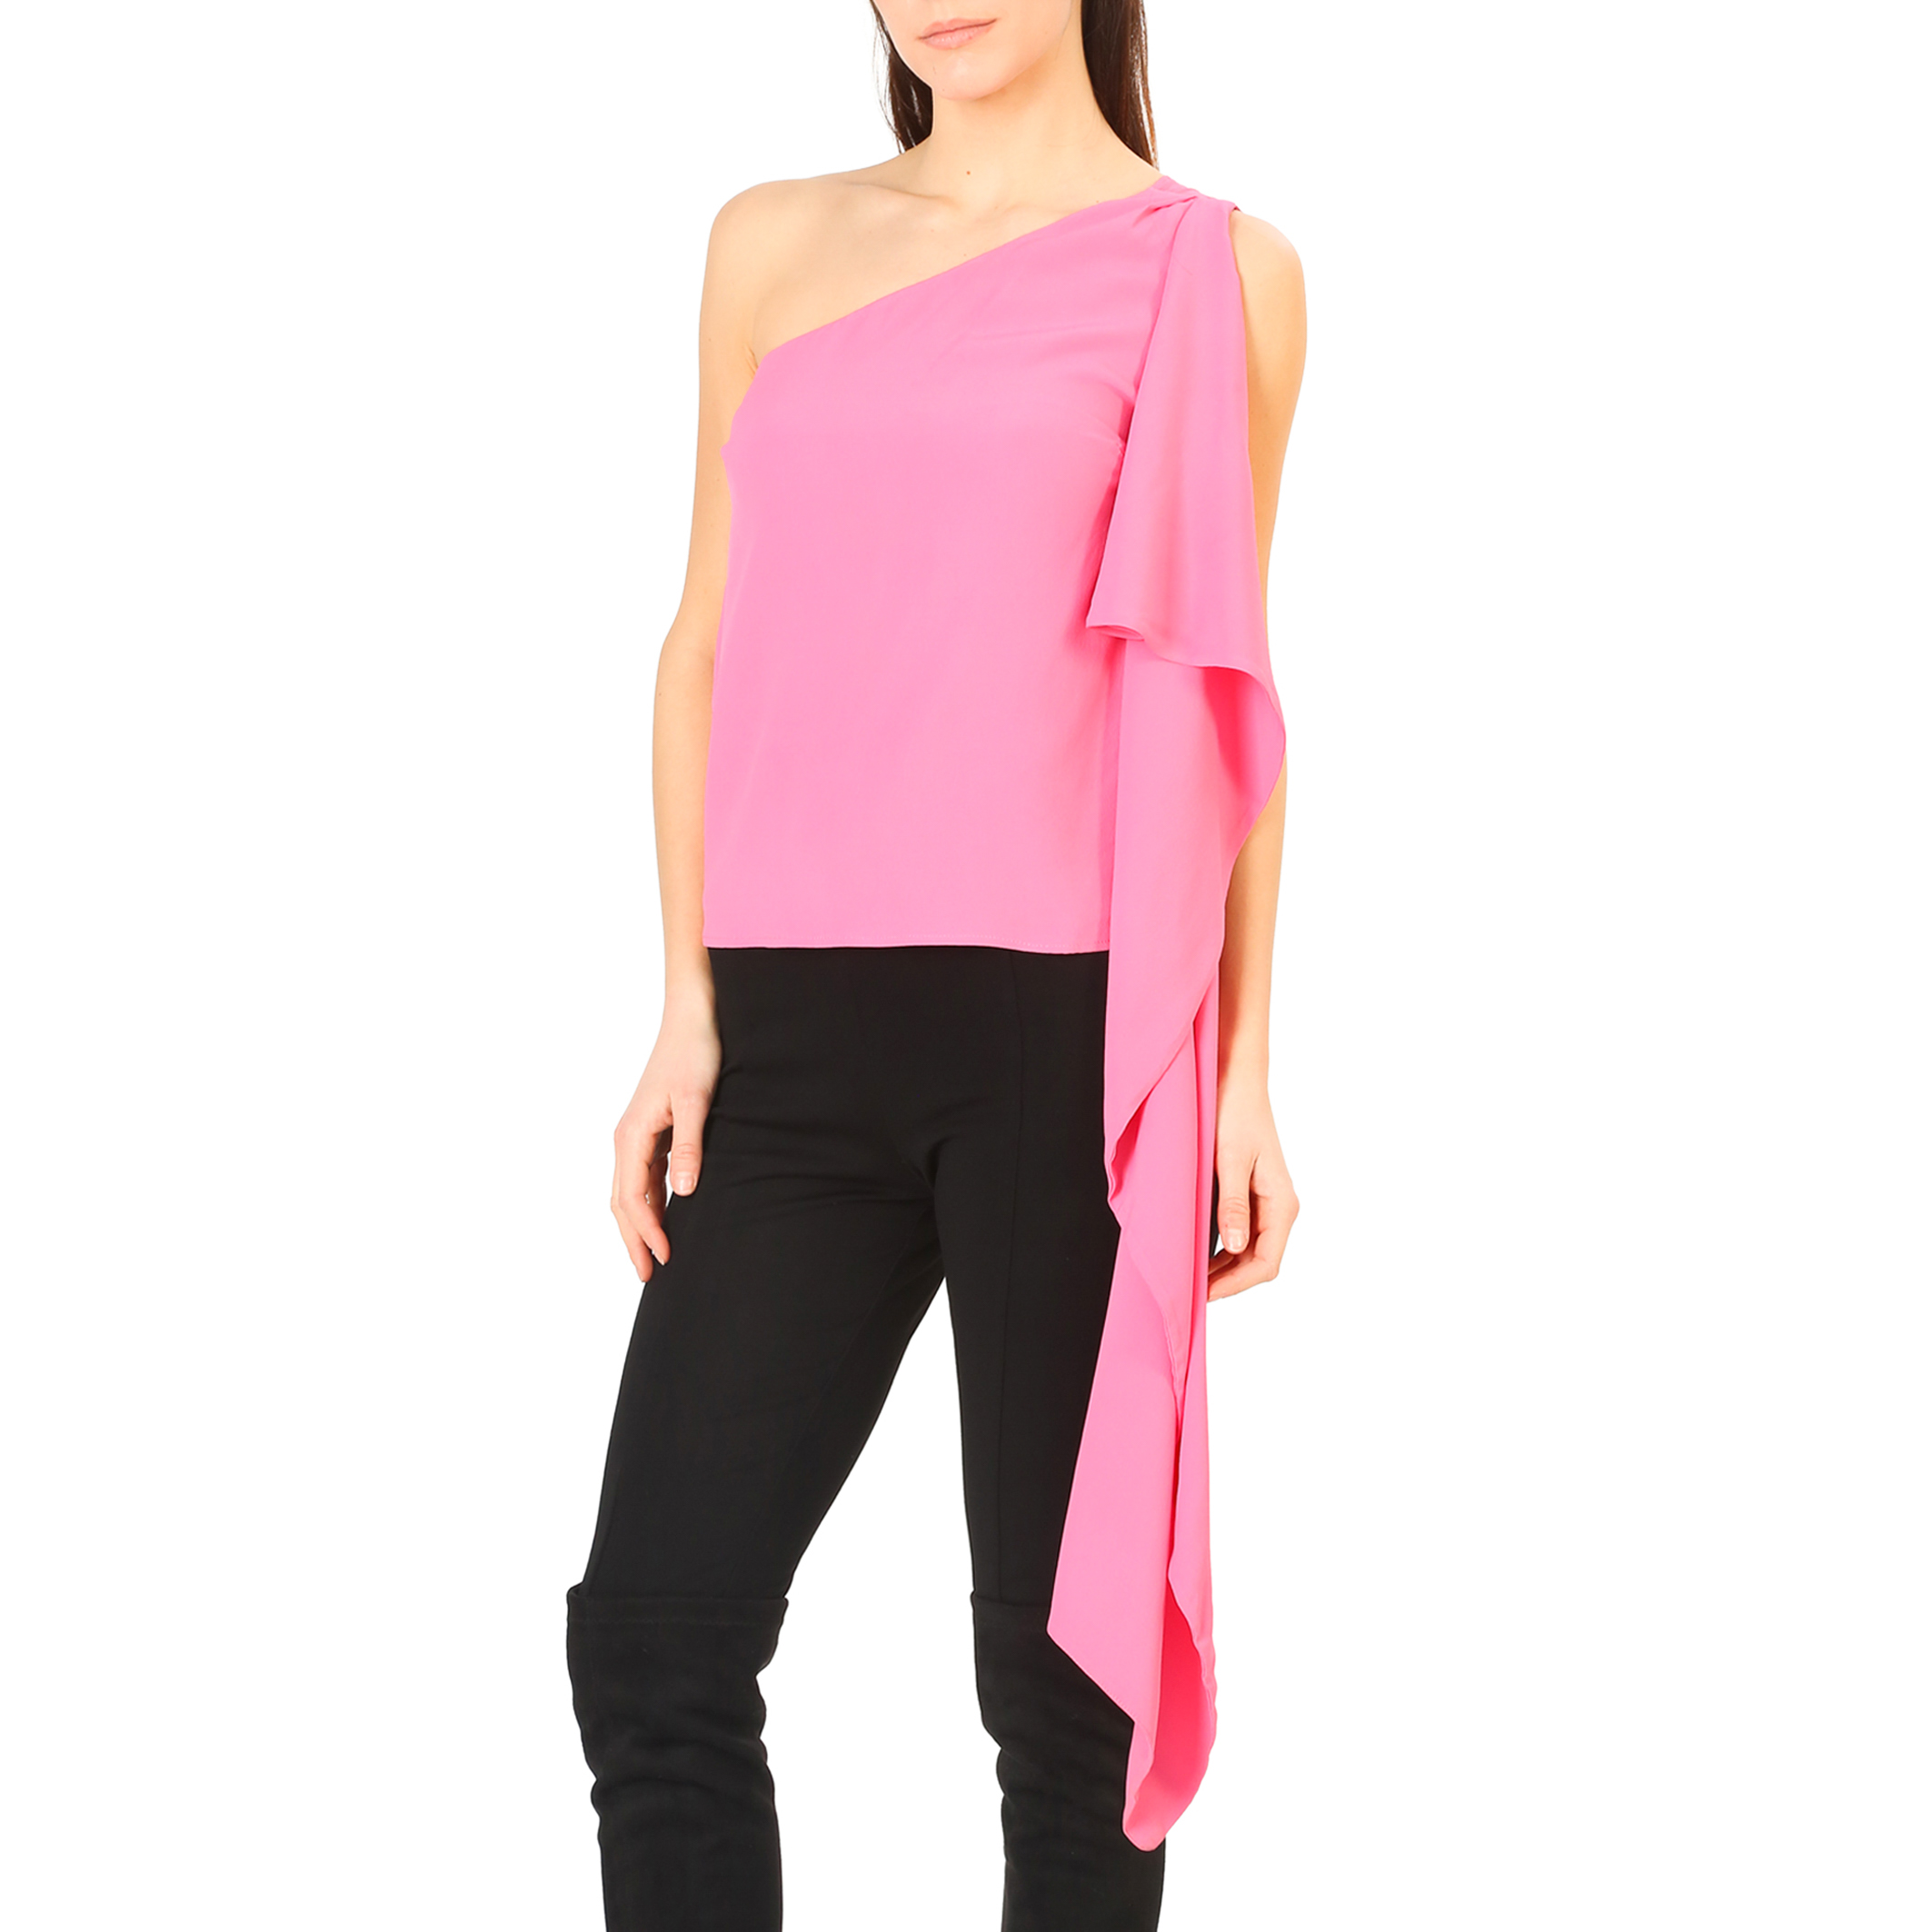 top annarita n 346_521